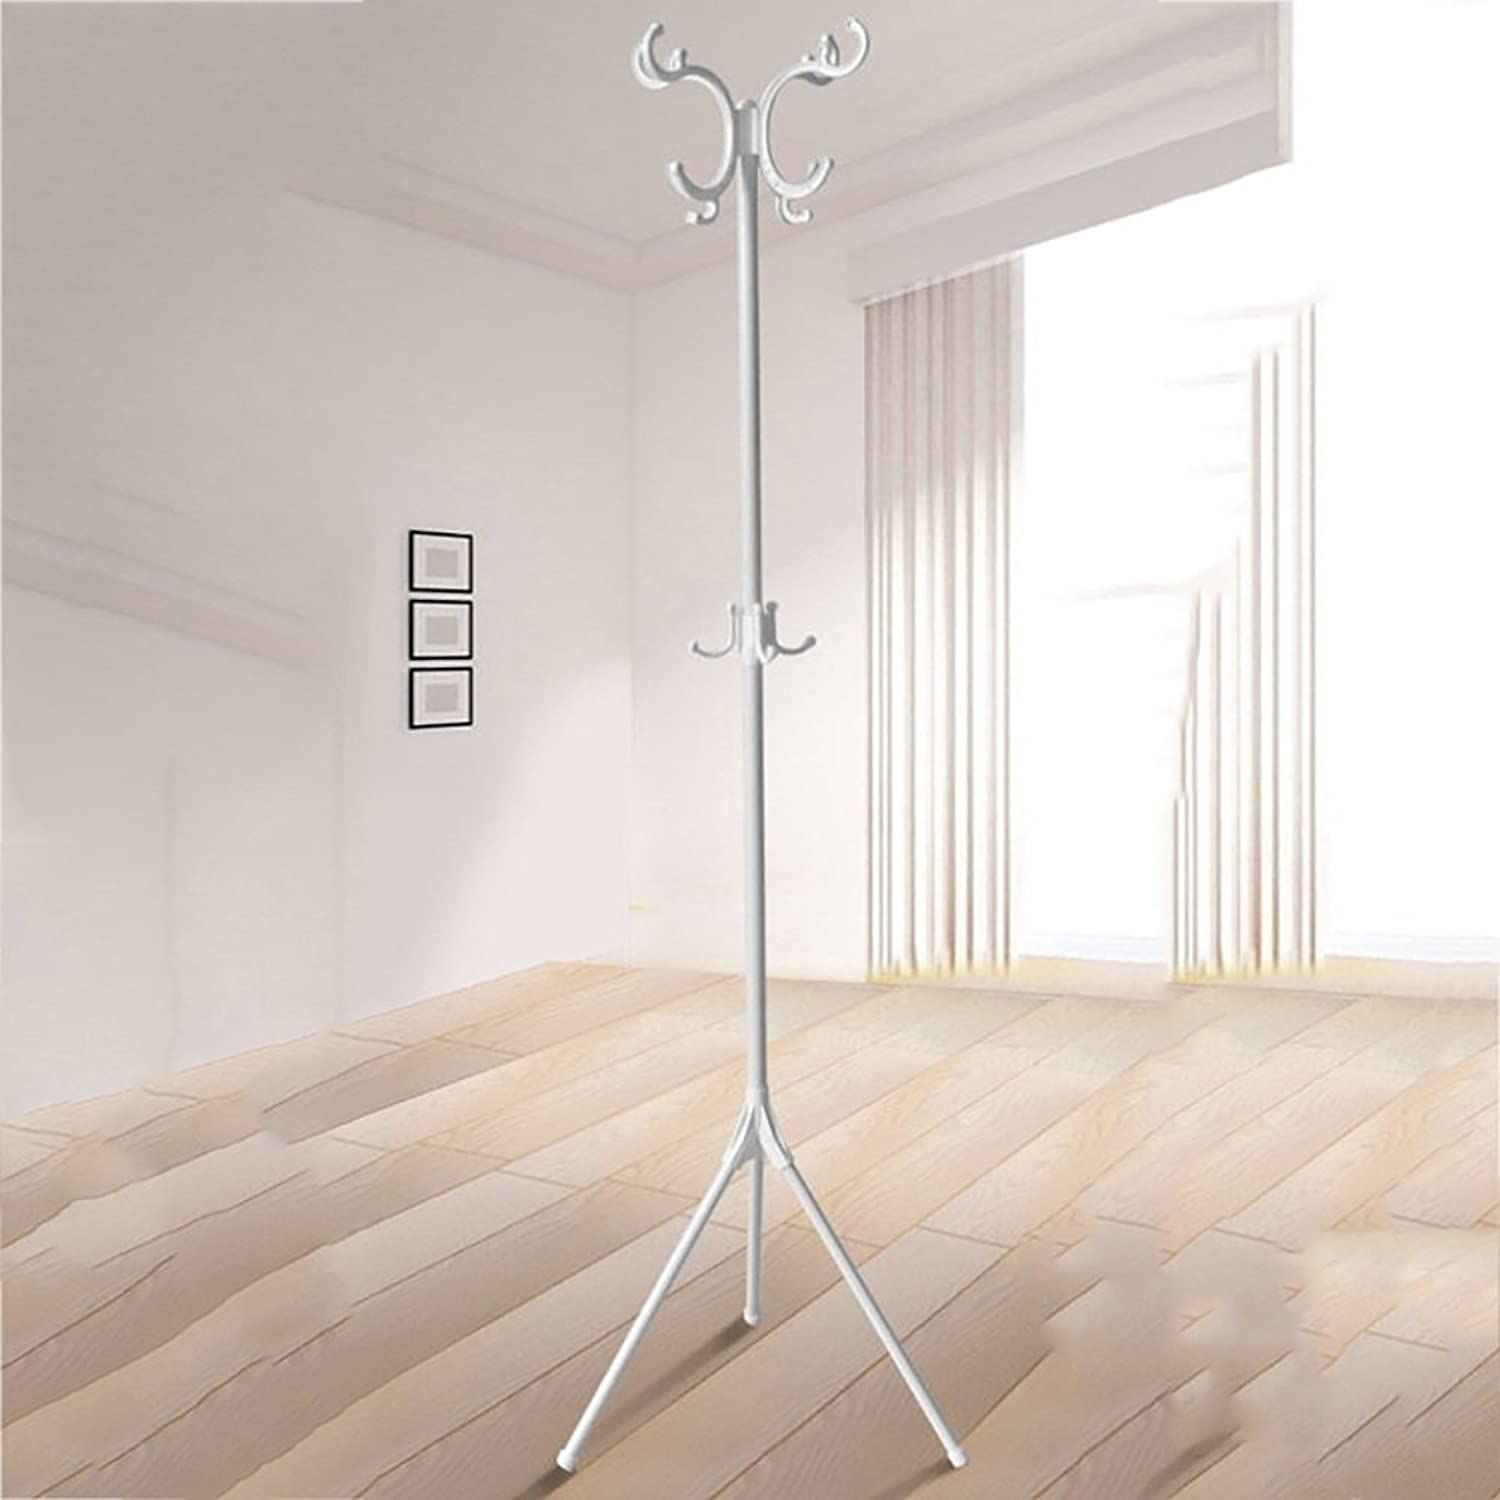 ZZHF yimaojia European Floorstanding Coat Rack Bedroom Simple Hangers Multifunction  Iron Art Storage Rack (2 colors Optional) (color   White)